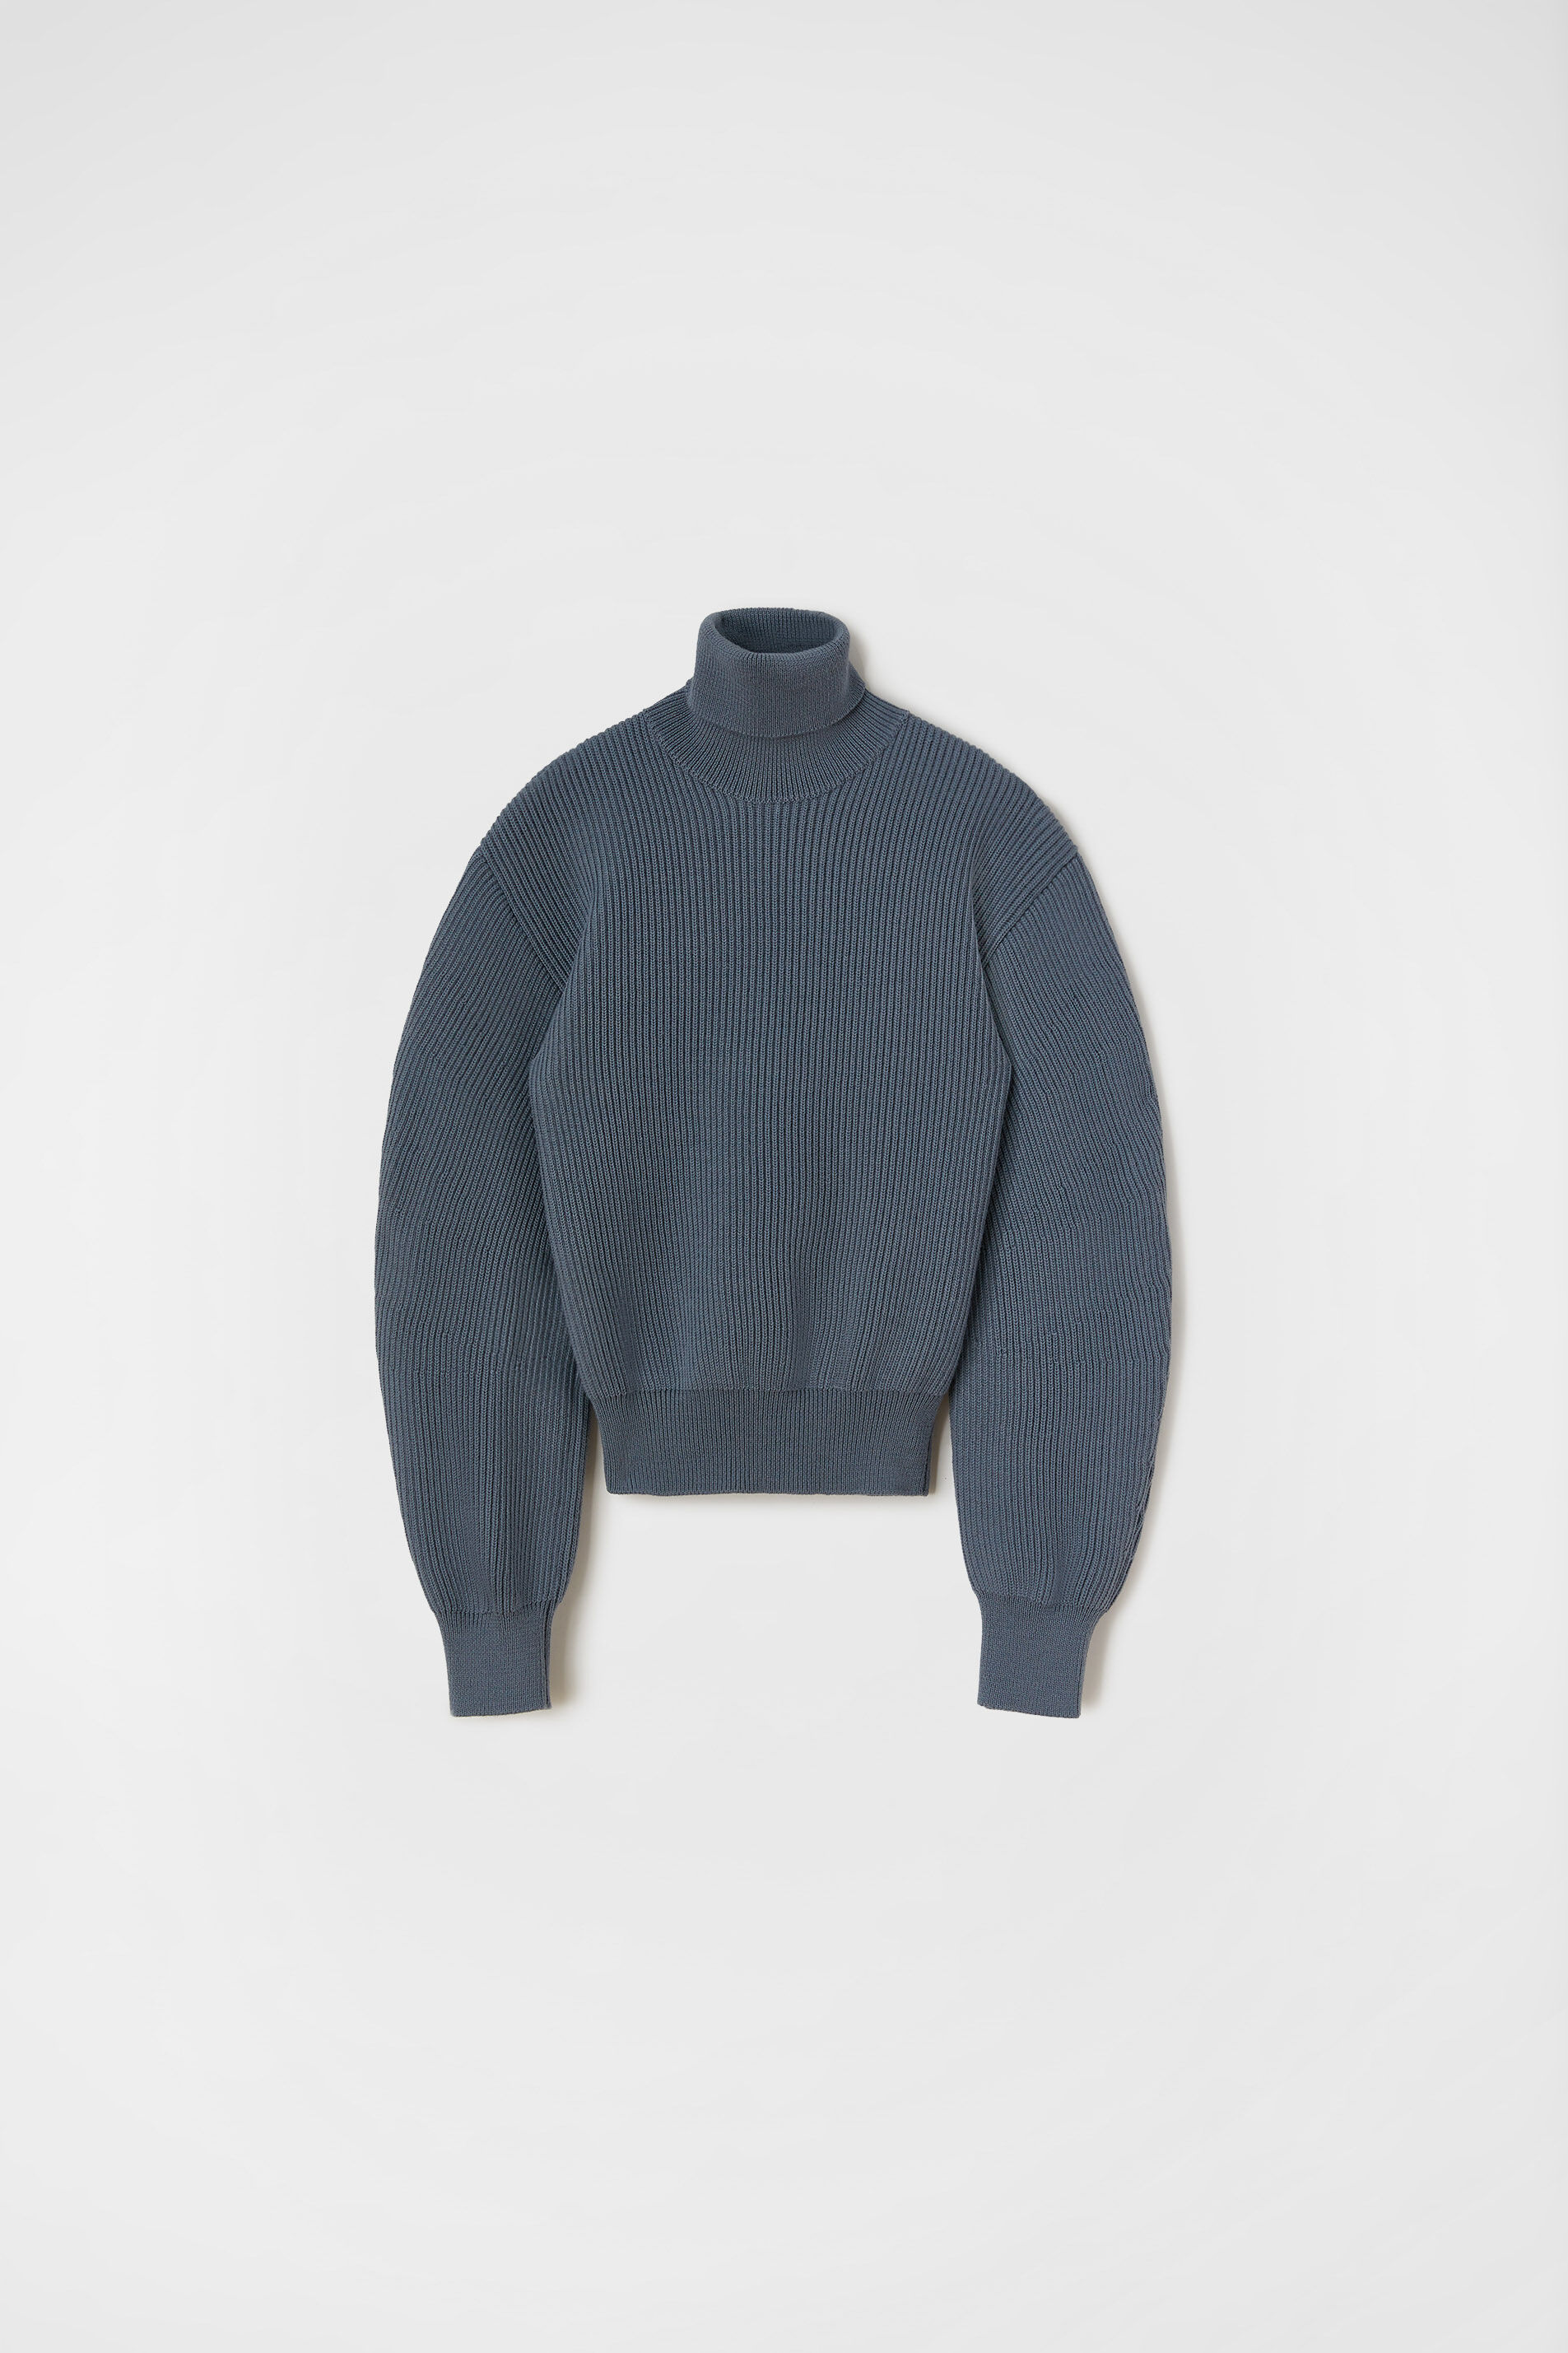 Sweater, silver, large